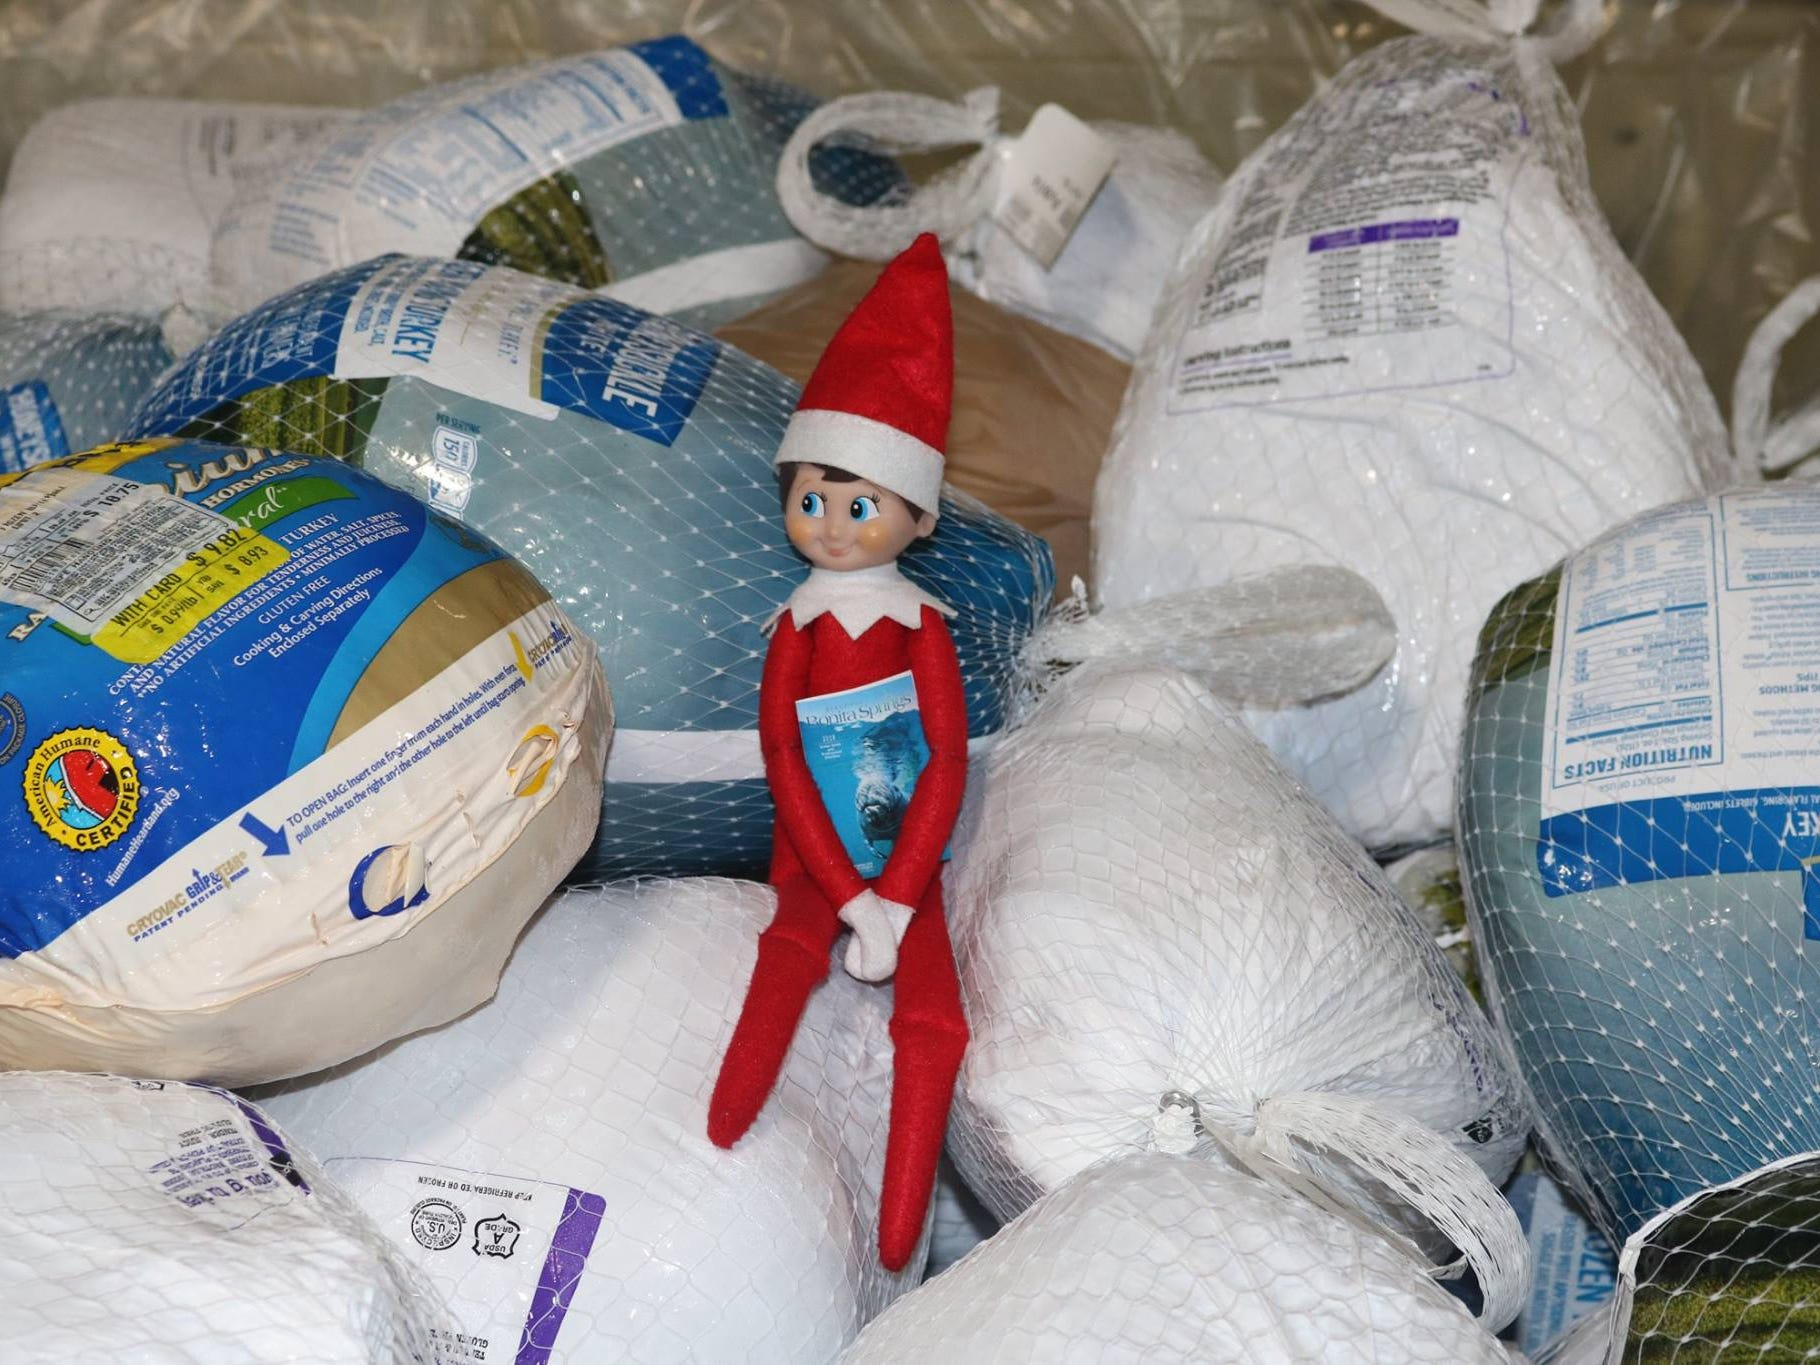 Chauncey the Elf from the Bonita Springs Area Chamber of Commerce visits member businesses every December. Here is Chauncey at the Harry Chapin Food Bank.